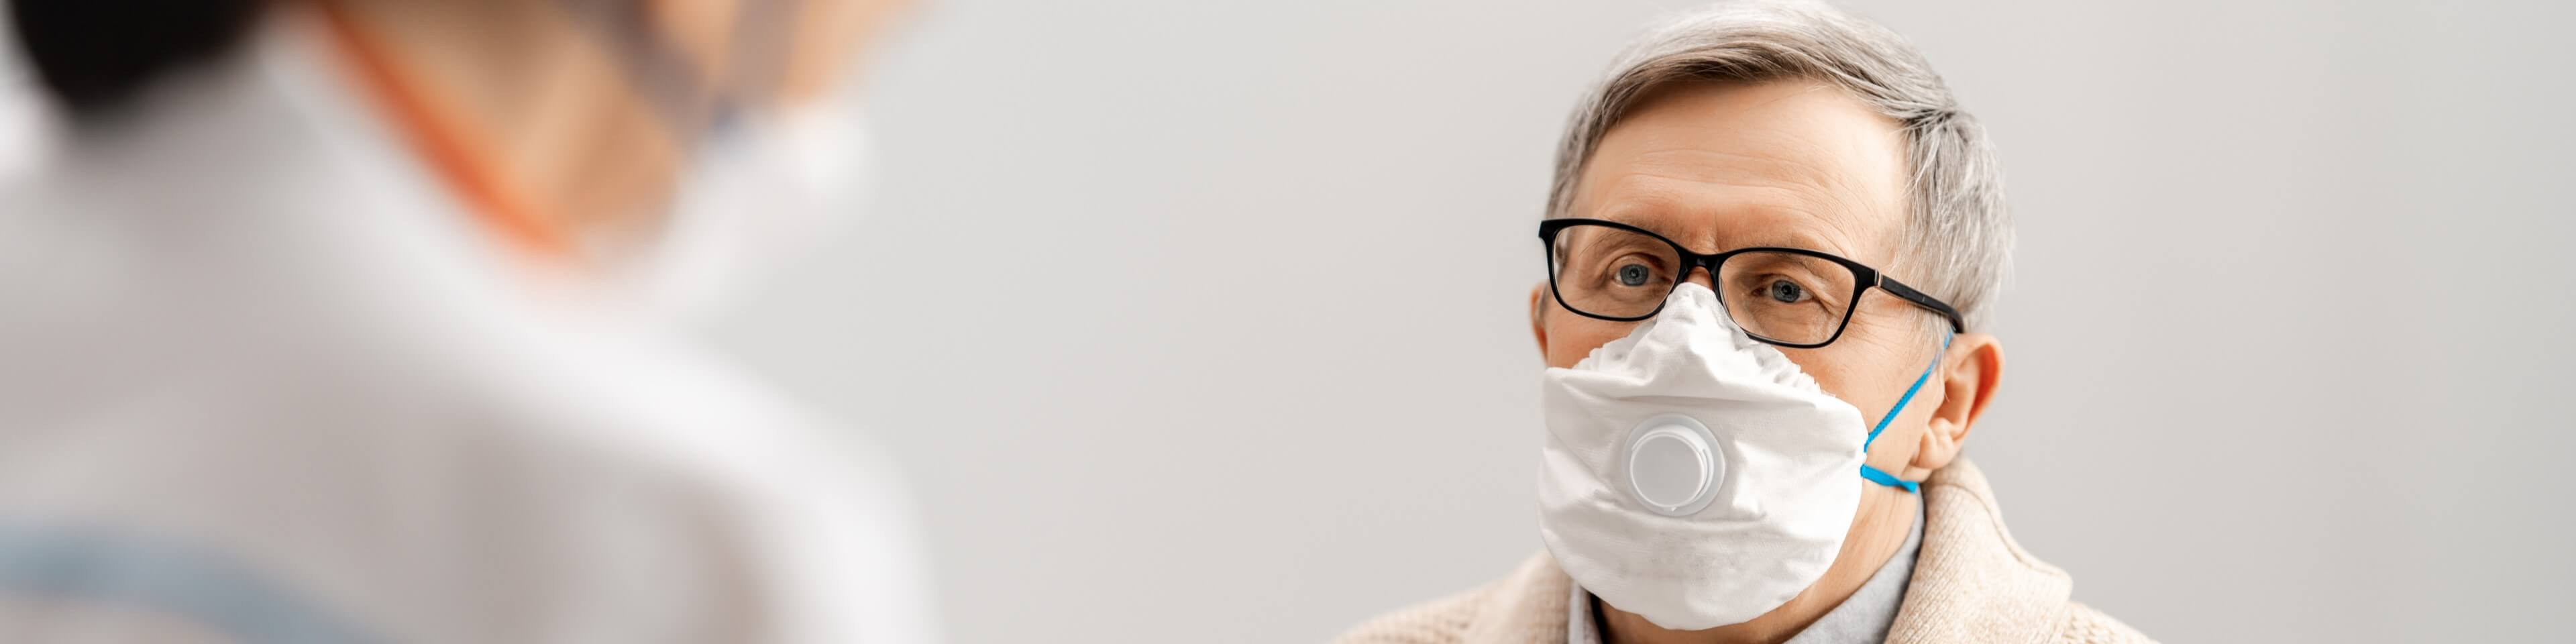 Patient wearing a mask during a doctor's appointment